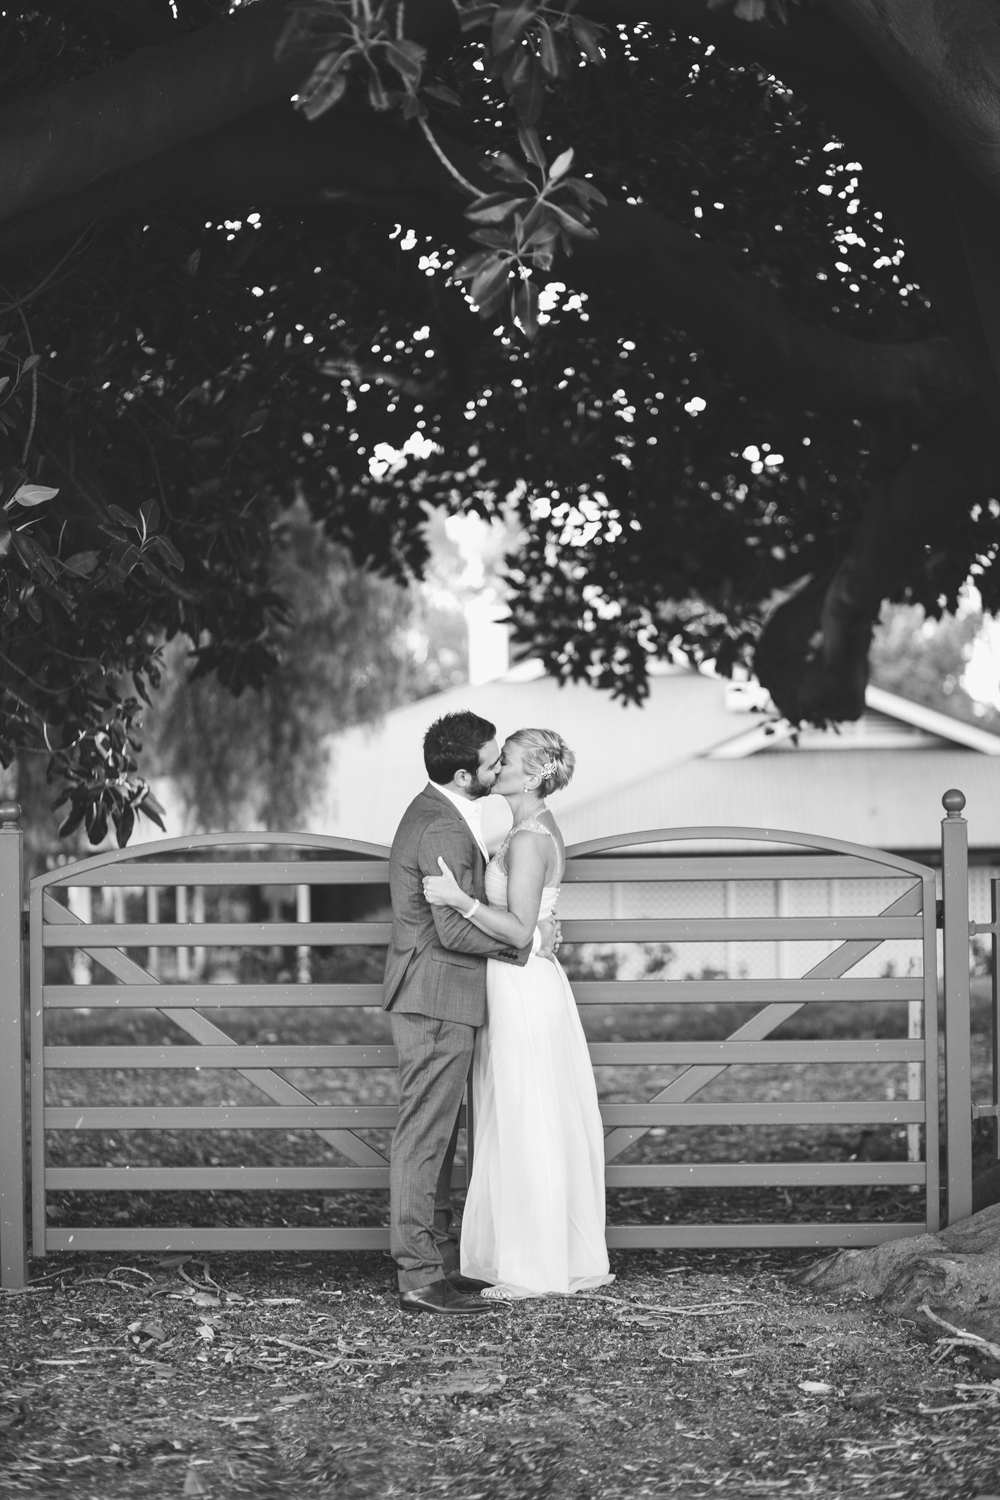 408-Byron-Bay-Wedding-Photographer-Carly-Tia-Photography.jpg